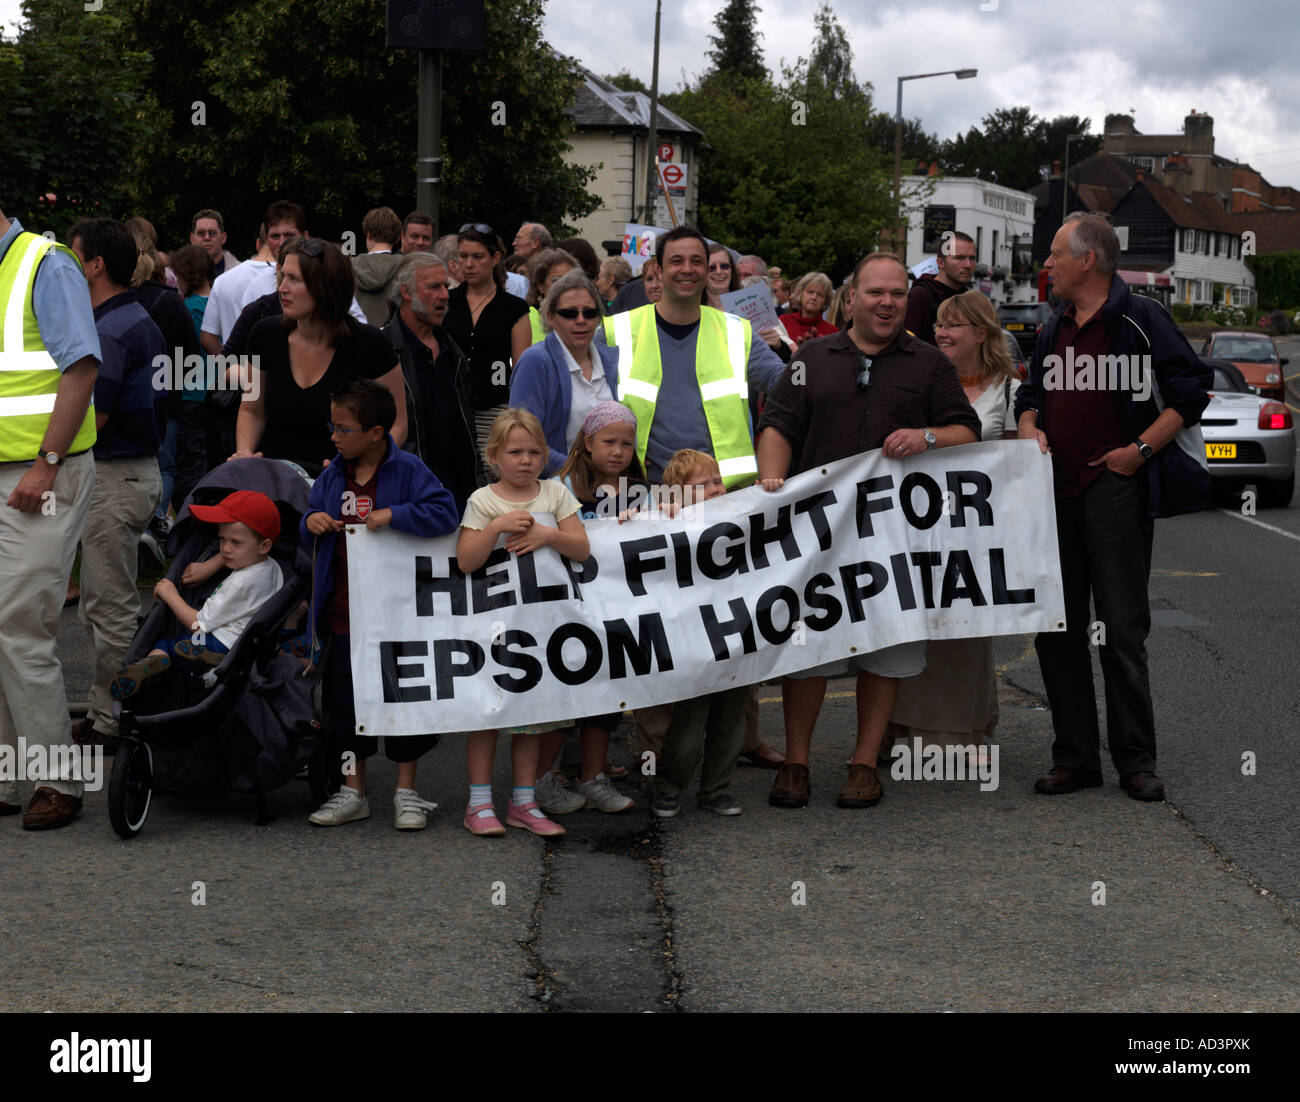 Protestors Outside Epsom District Hospital Over the Proposed Closure of the Maternity and Neonatal Departments - Stock Image